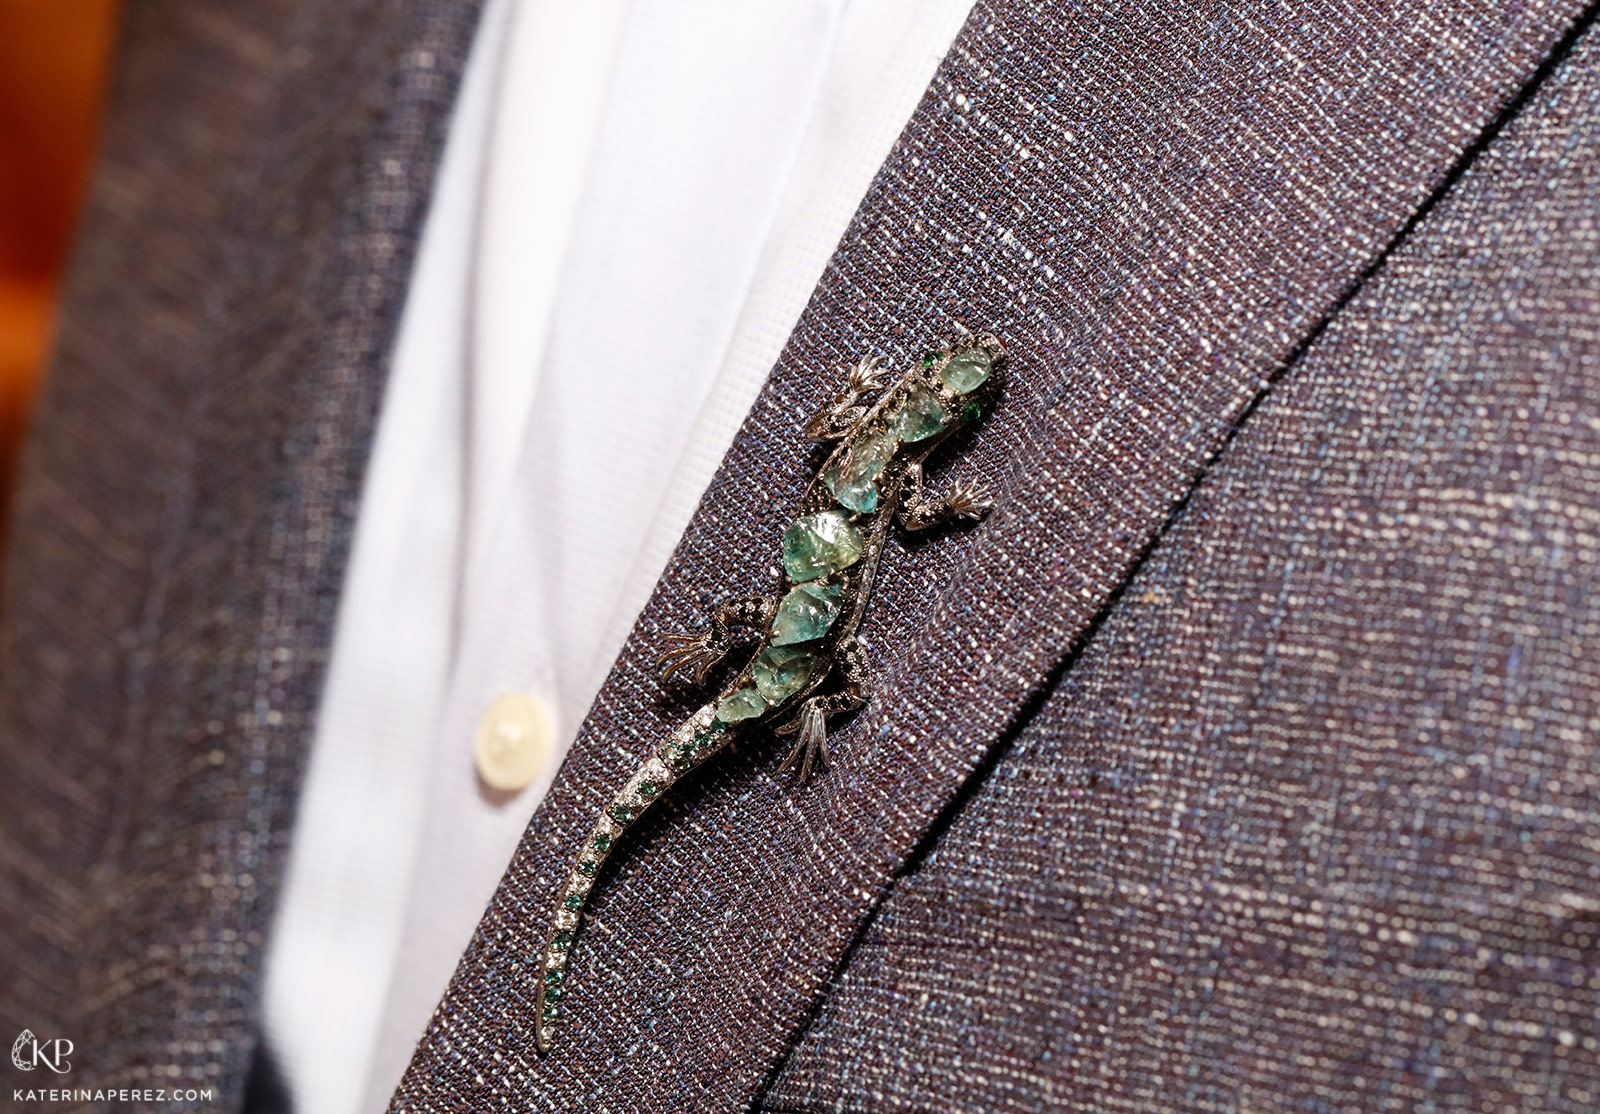 Omi Privé's 'Alexis' the Lizard, in unfaceted alexandrites